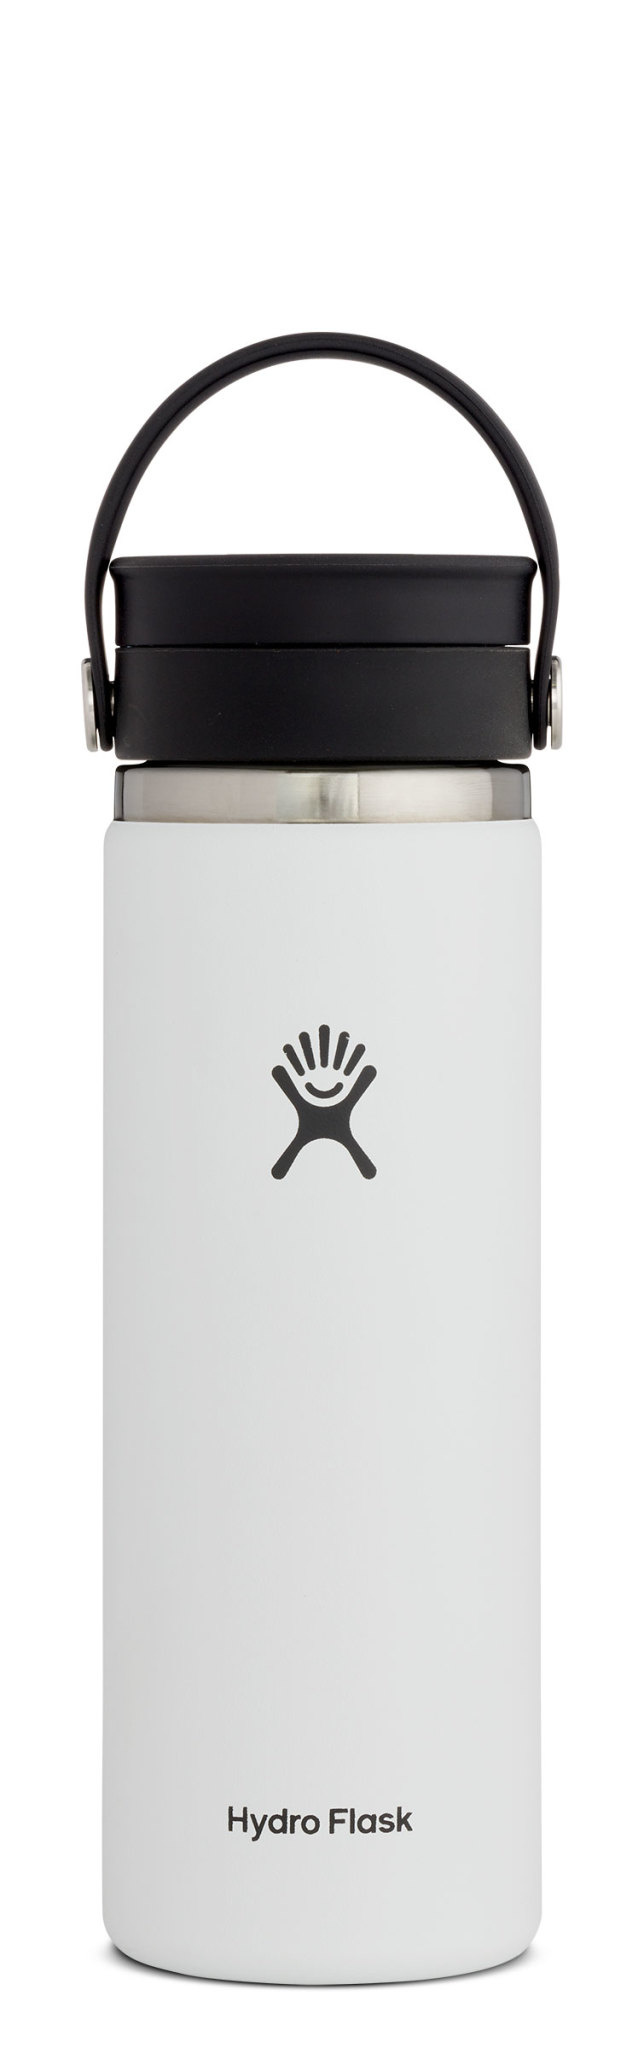 Hydro Flask 20oz Wide Mouth with Flex Sip Lid-6